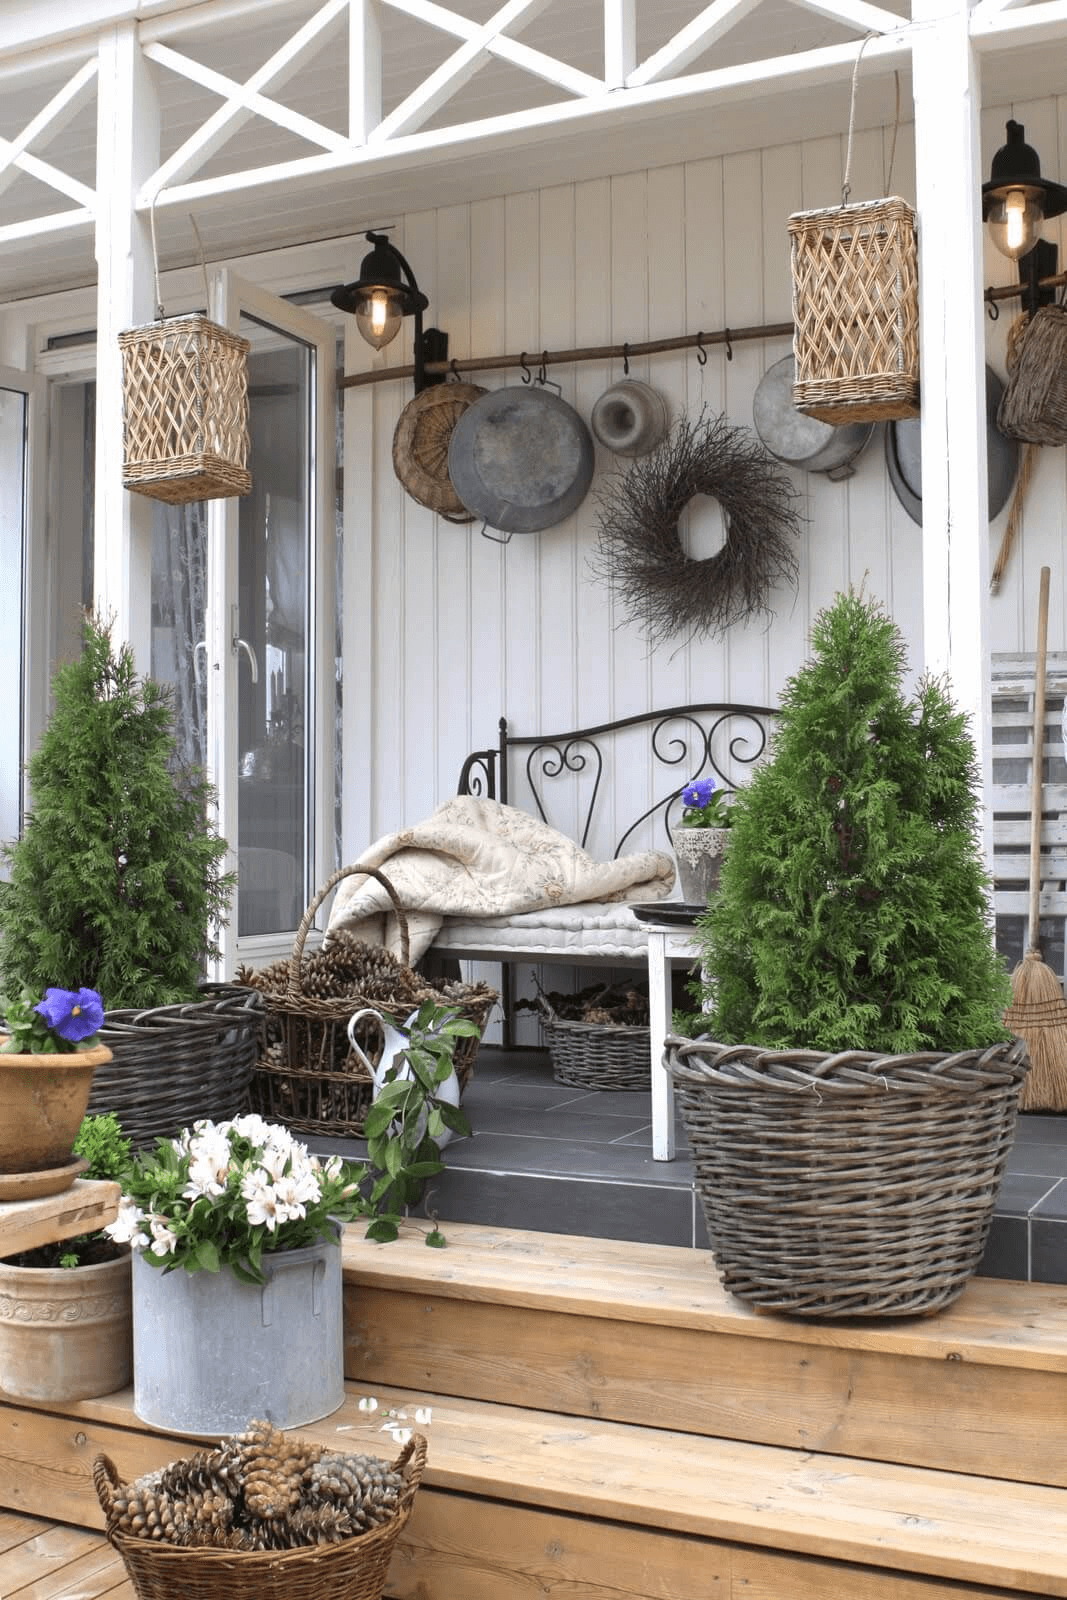 OLD BLANKED AND LIGHTING FARMHOUSE PORCH DECOR IDEAS